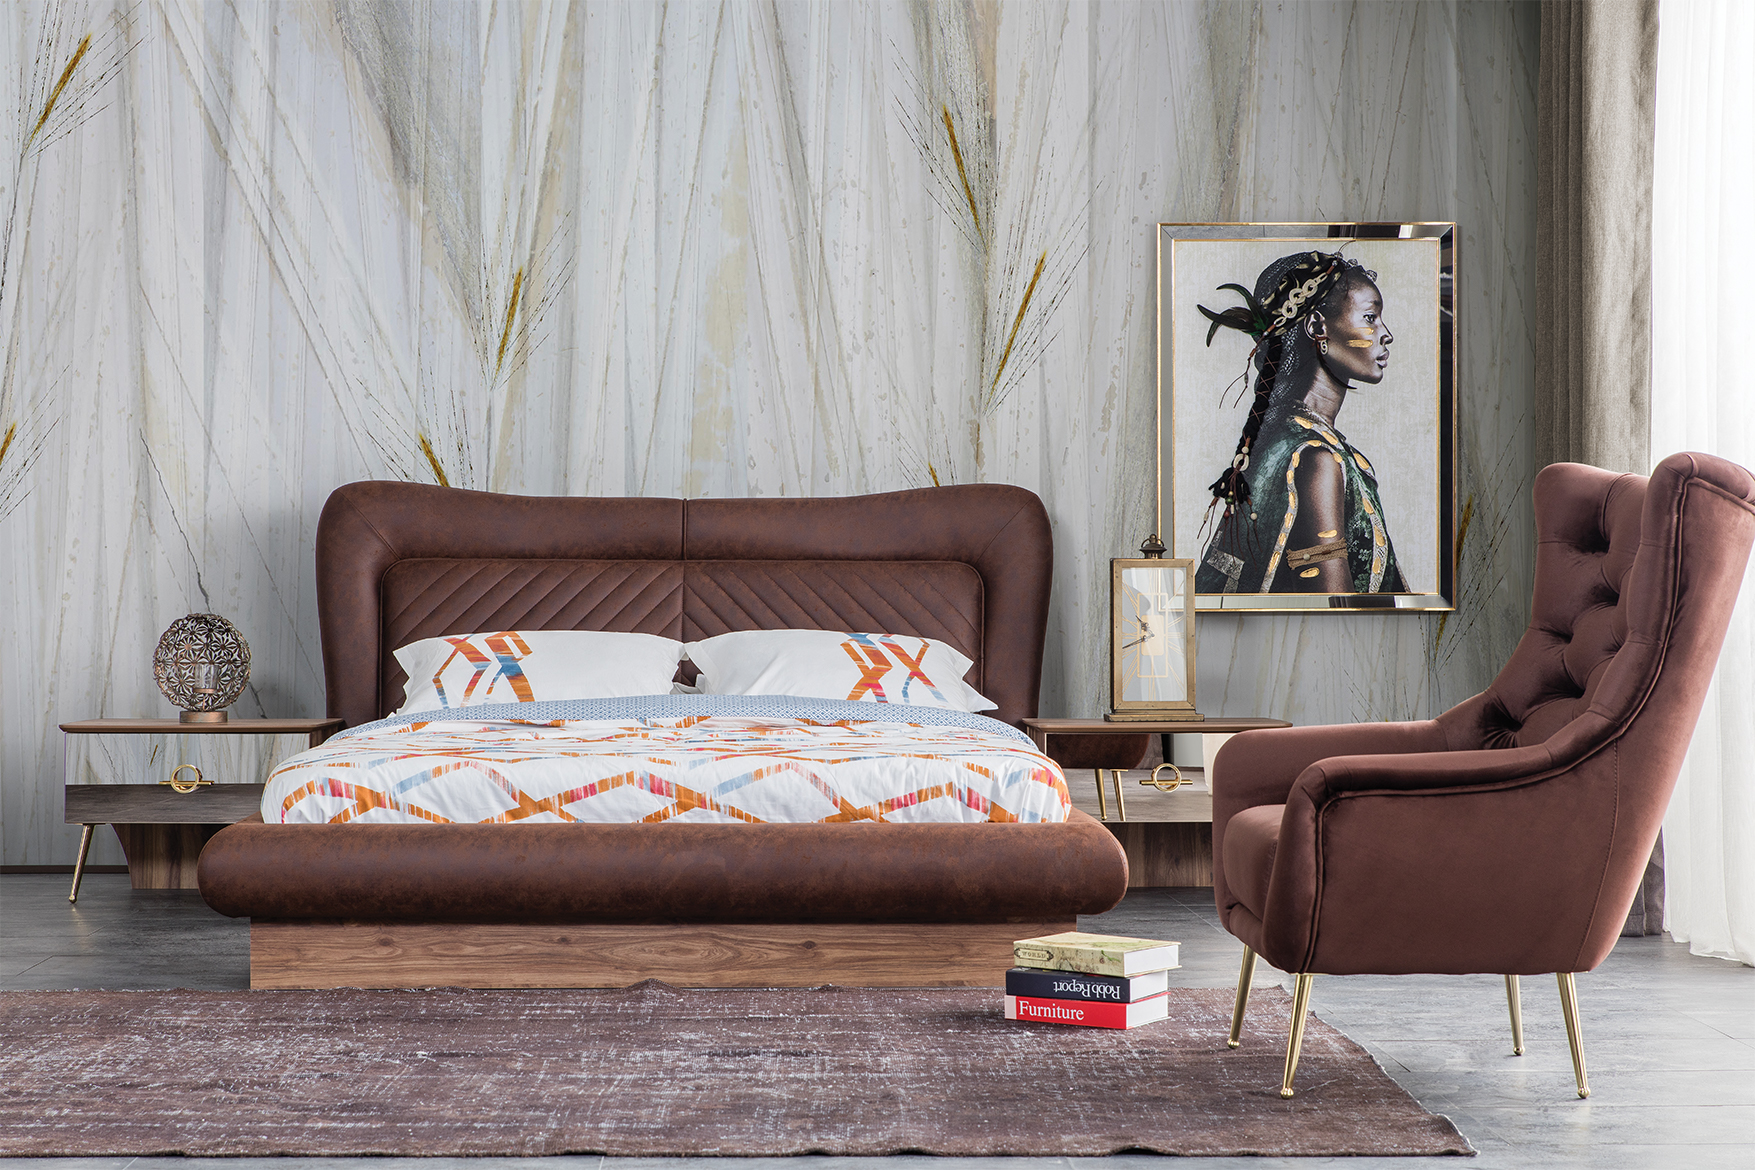 BW037-18 Bed New Arrival